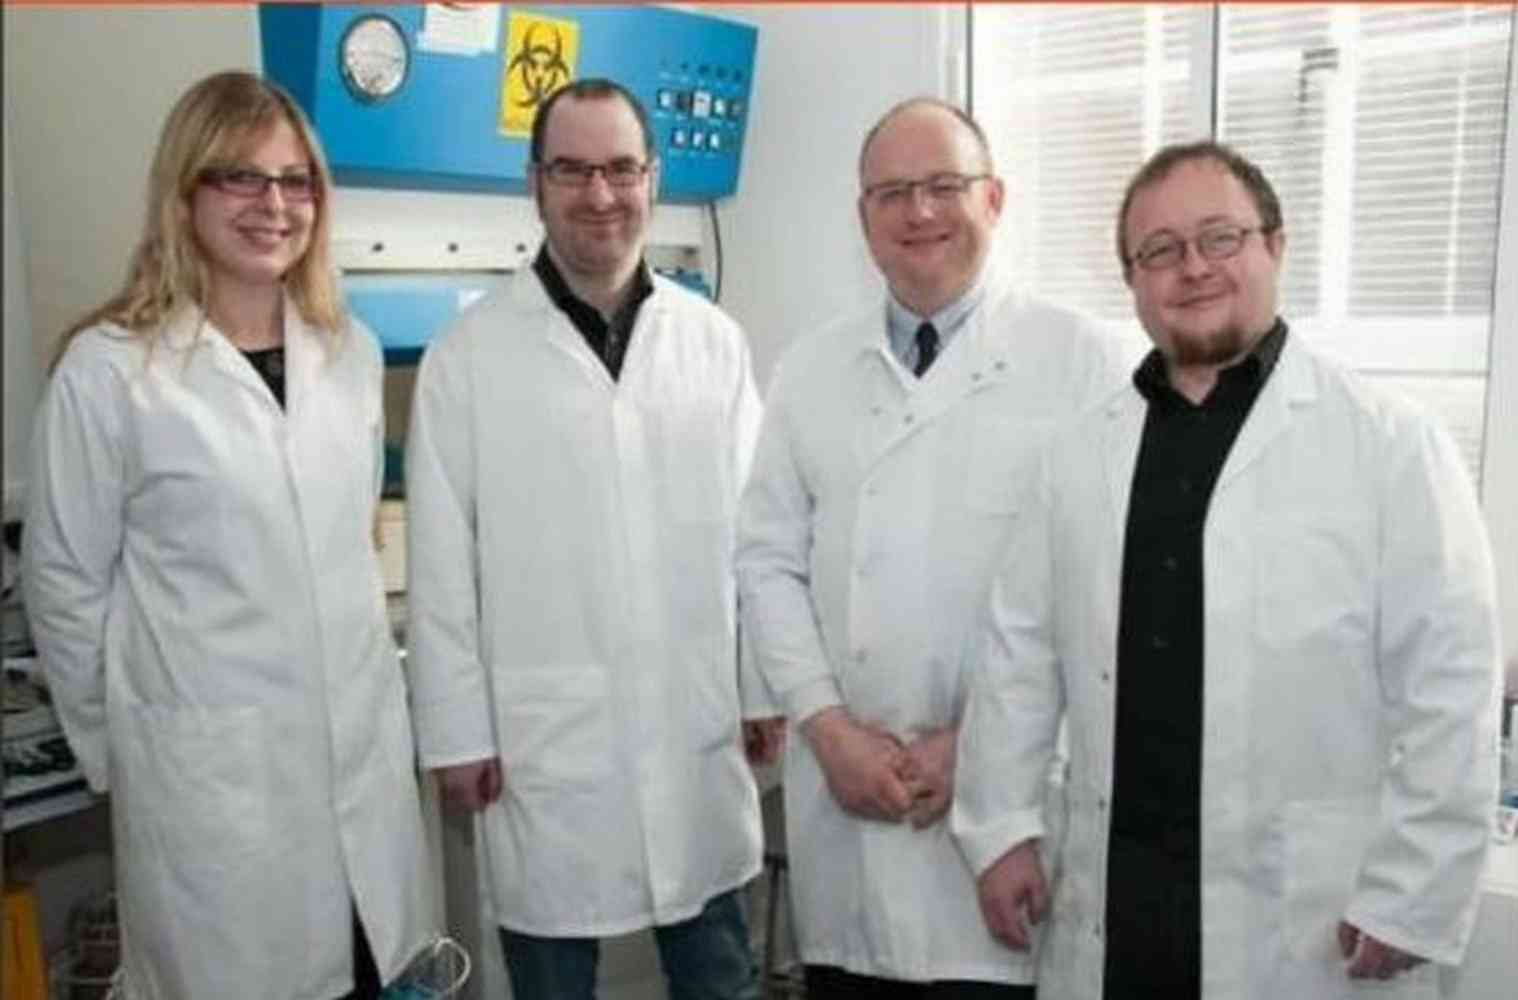 Team LGX from 2014 - Left to right: Dr Lauren Mulcahey-Ryan, Dr Alex Sinclair, Prof Mark Fielder and Dr Adam Le Gresley